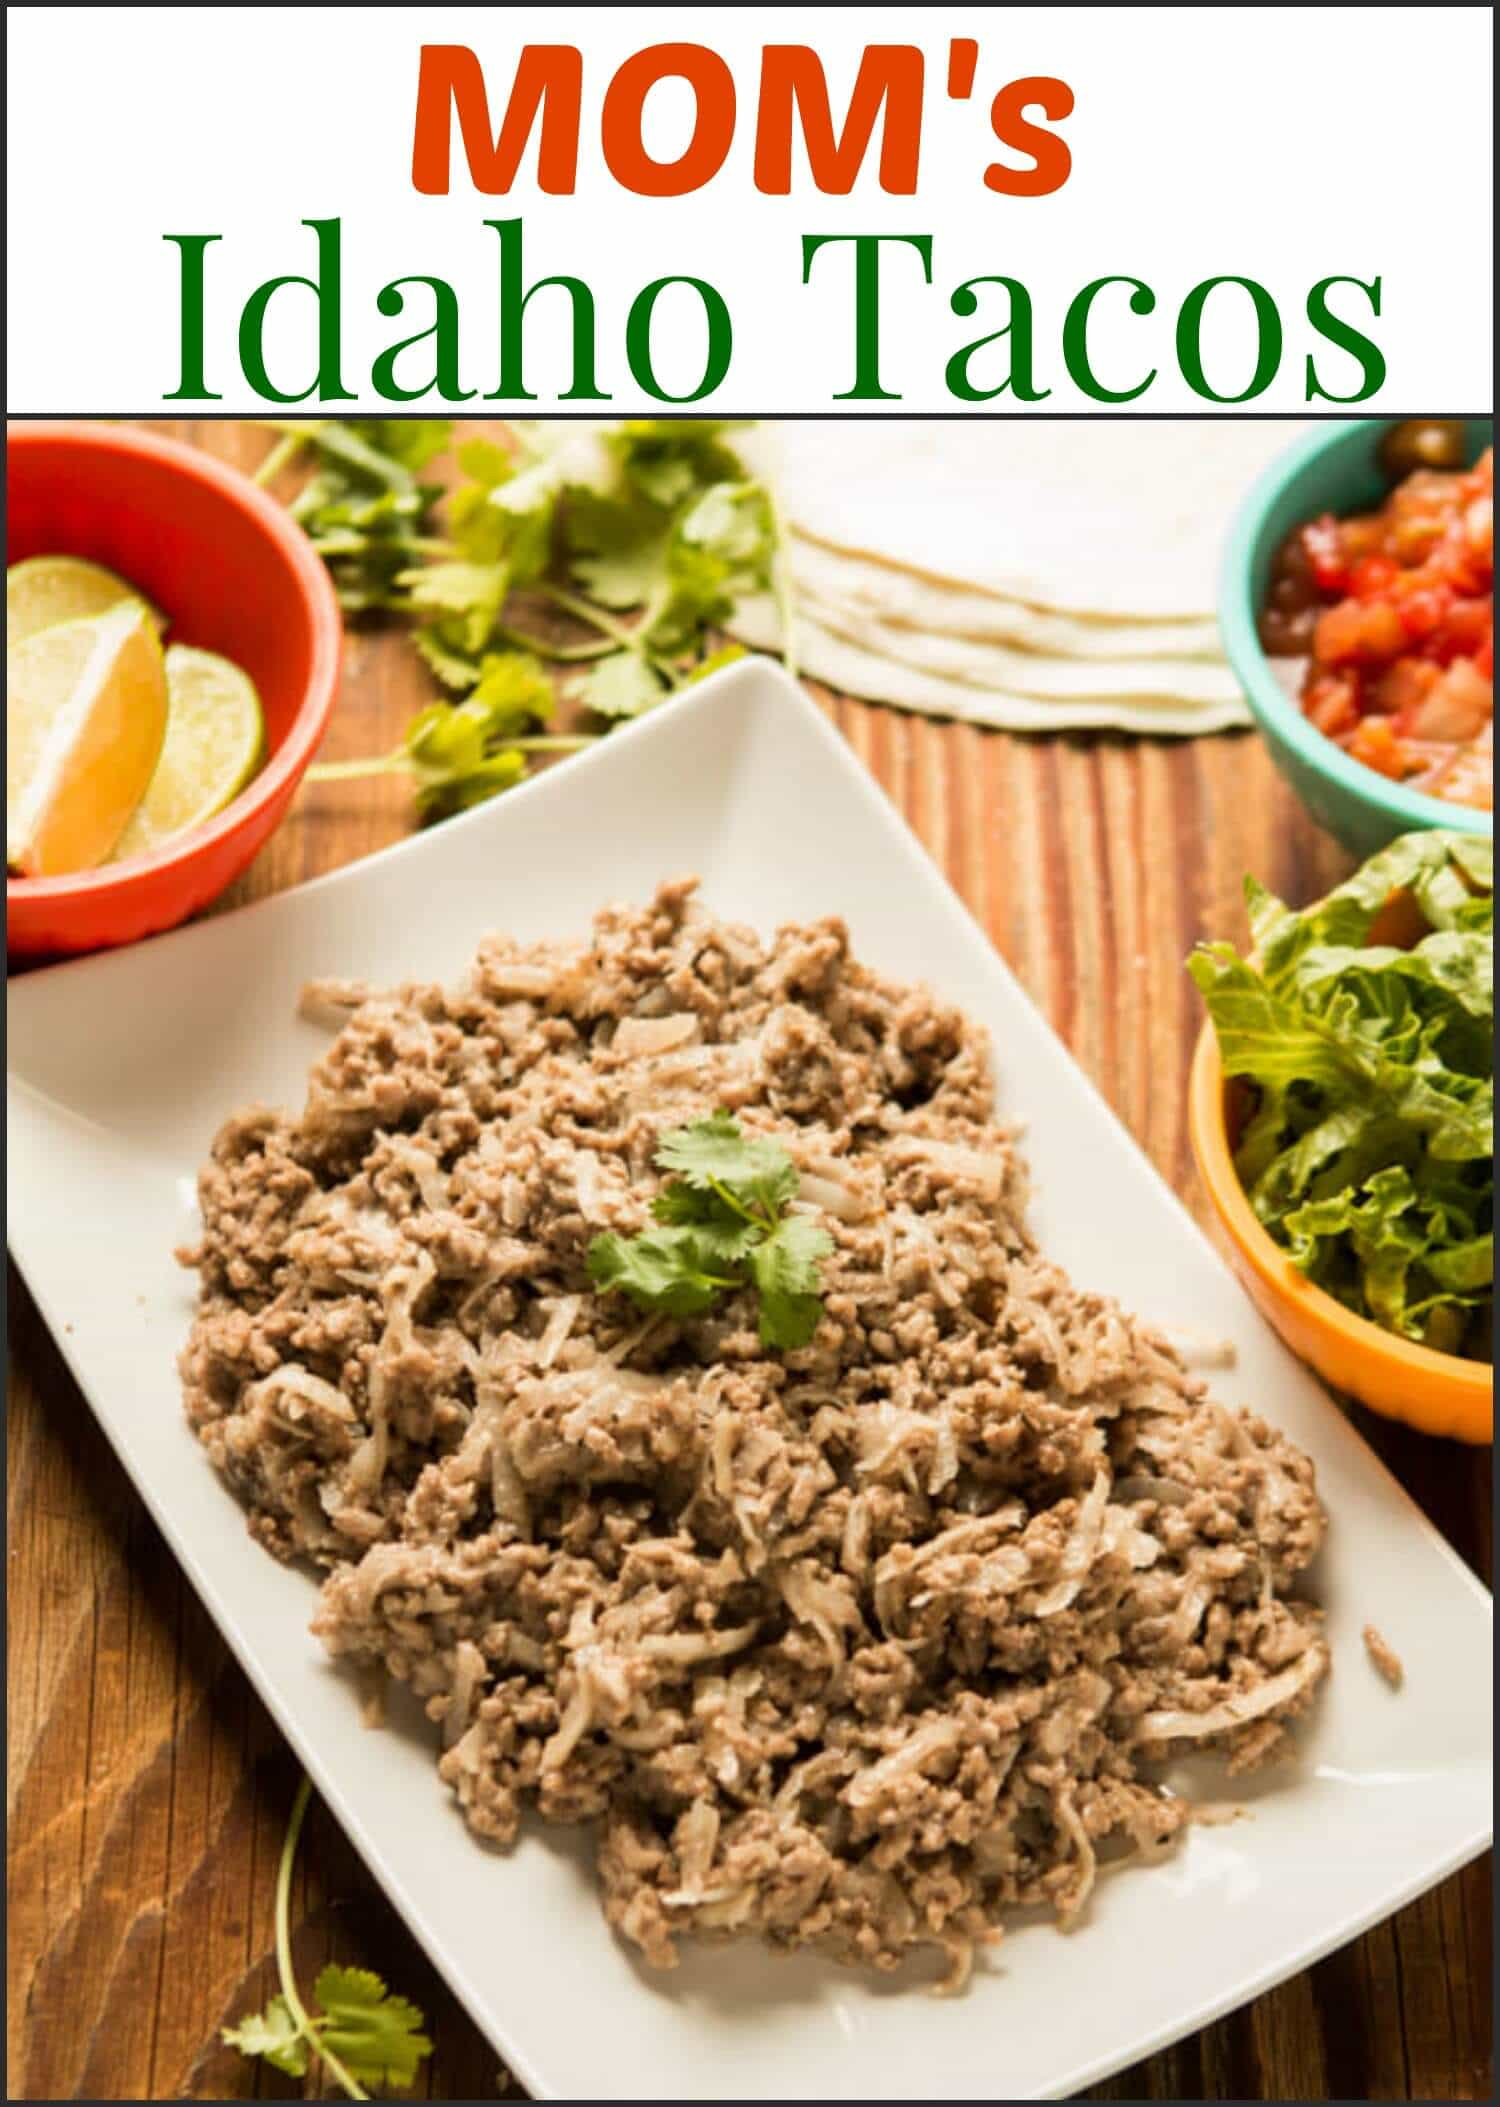 It's something you've never had, potatoes in your taco meat, but Mom's Idaho Tacos will totally win you over with how extra hearty and wonderful they are! ohsweetbasil.com